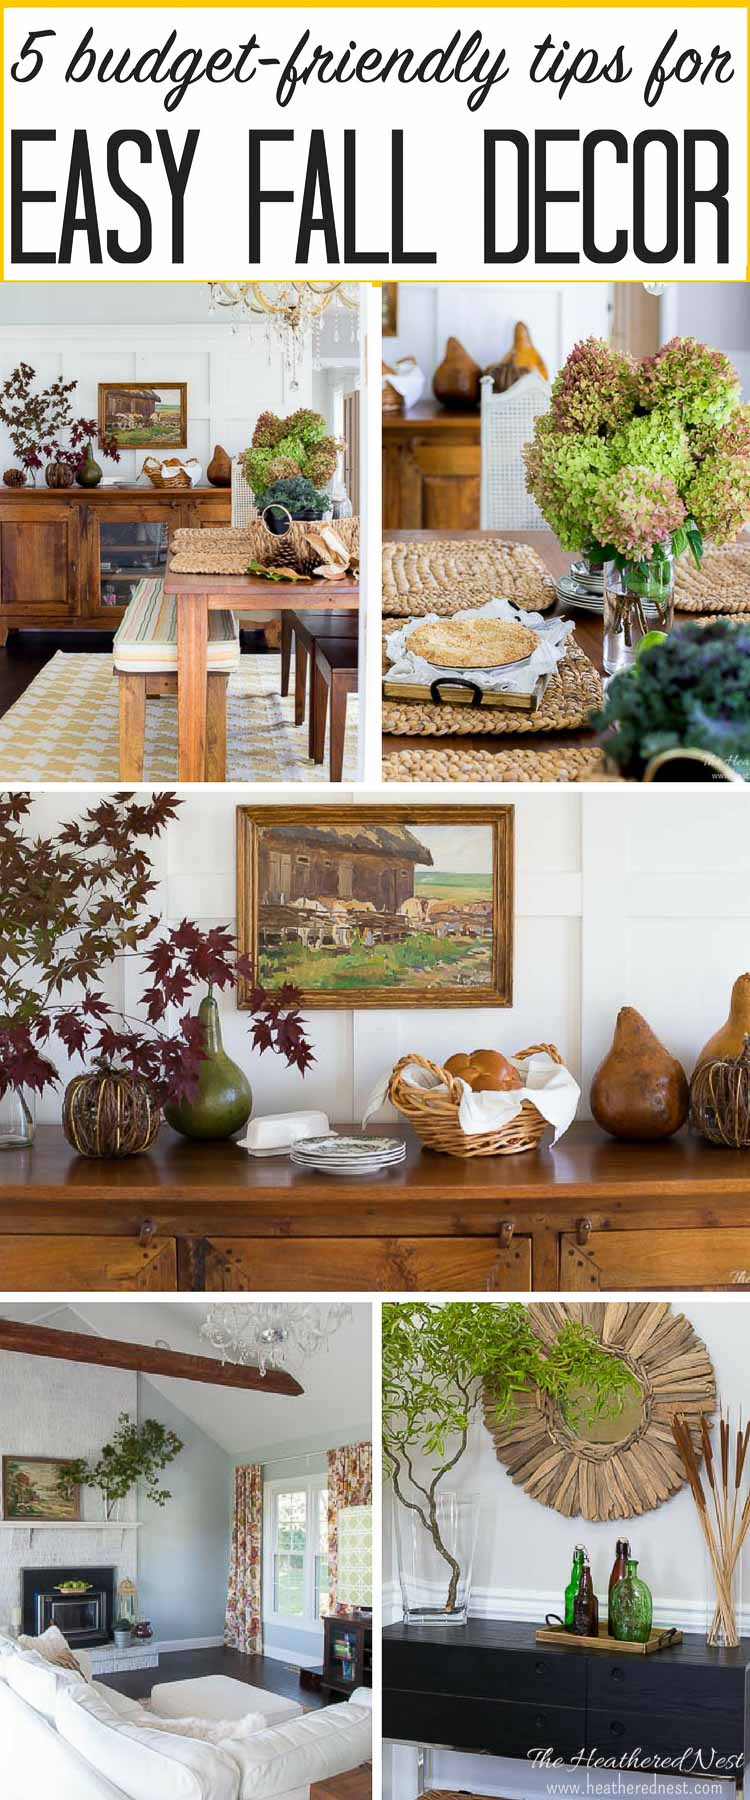 Don't stress about fall decor! It doesn't need to be hard. Decorate for autumn beautifully and on a budget with these 5 simple tips fall home decorating ideas. #falldecor #fallhomedecor #decoratingforfall #easyfalldecorideas #falldecoratingideas #easyfalldecorating #homedecorforfall #simplefallhomedecor #homedecor #seasonalhomedecor